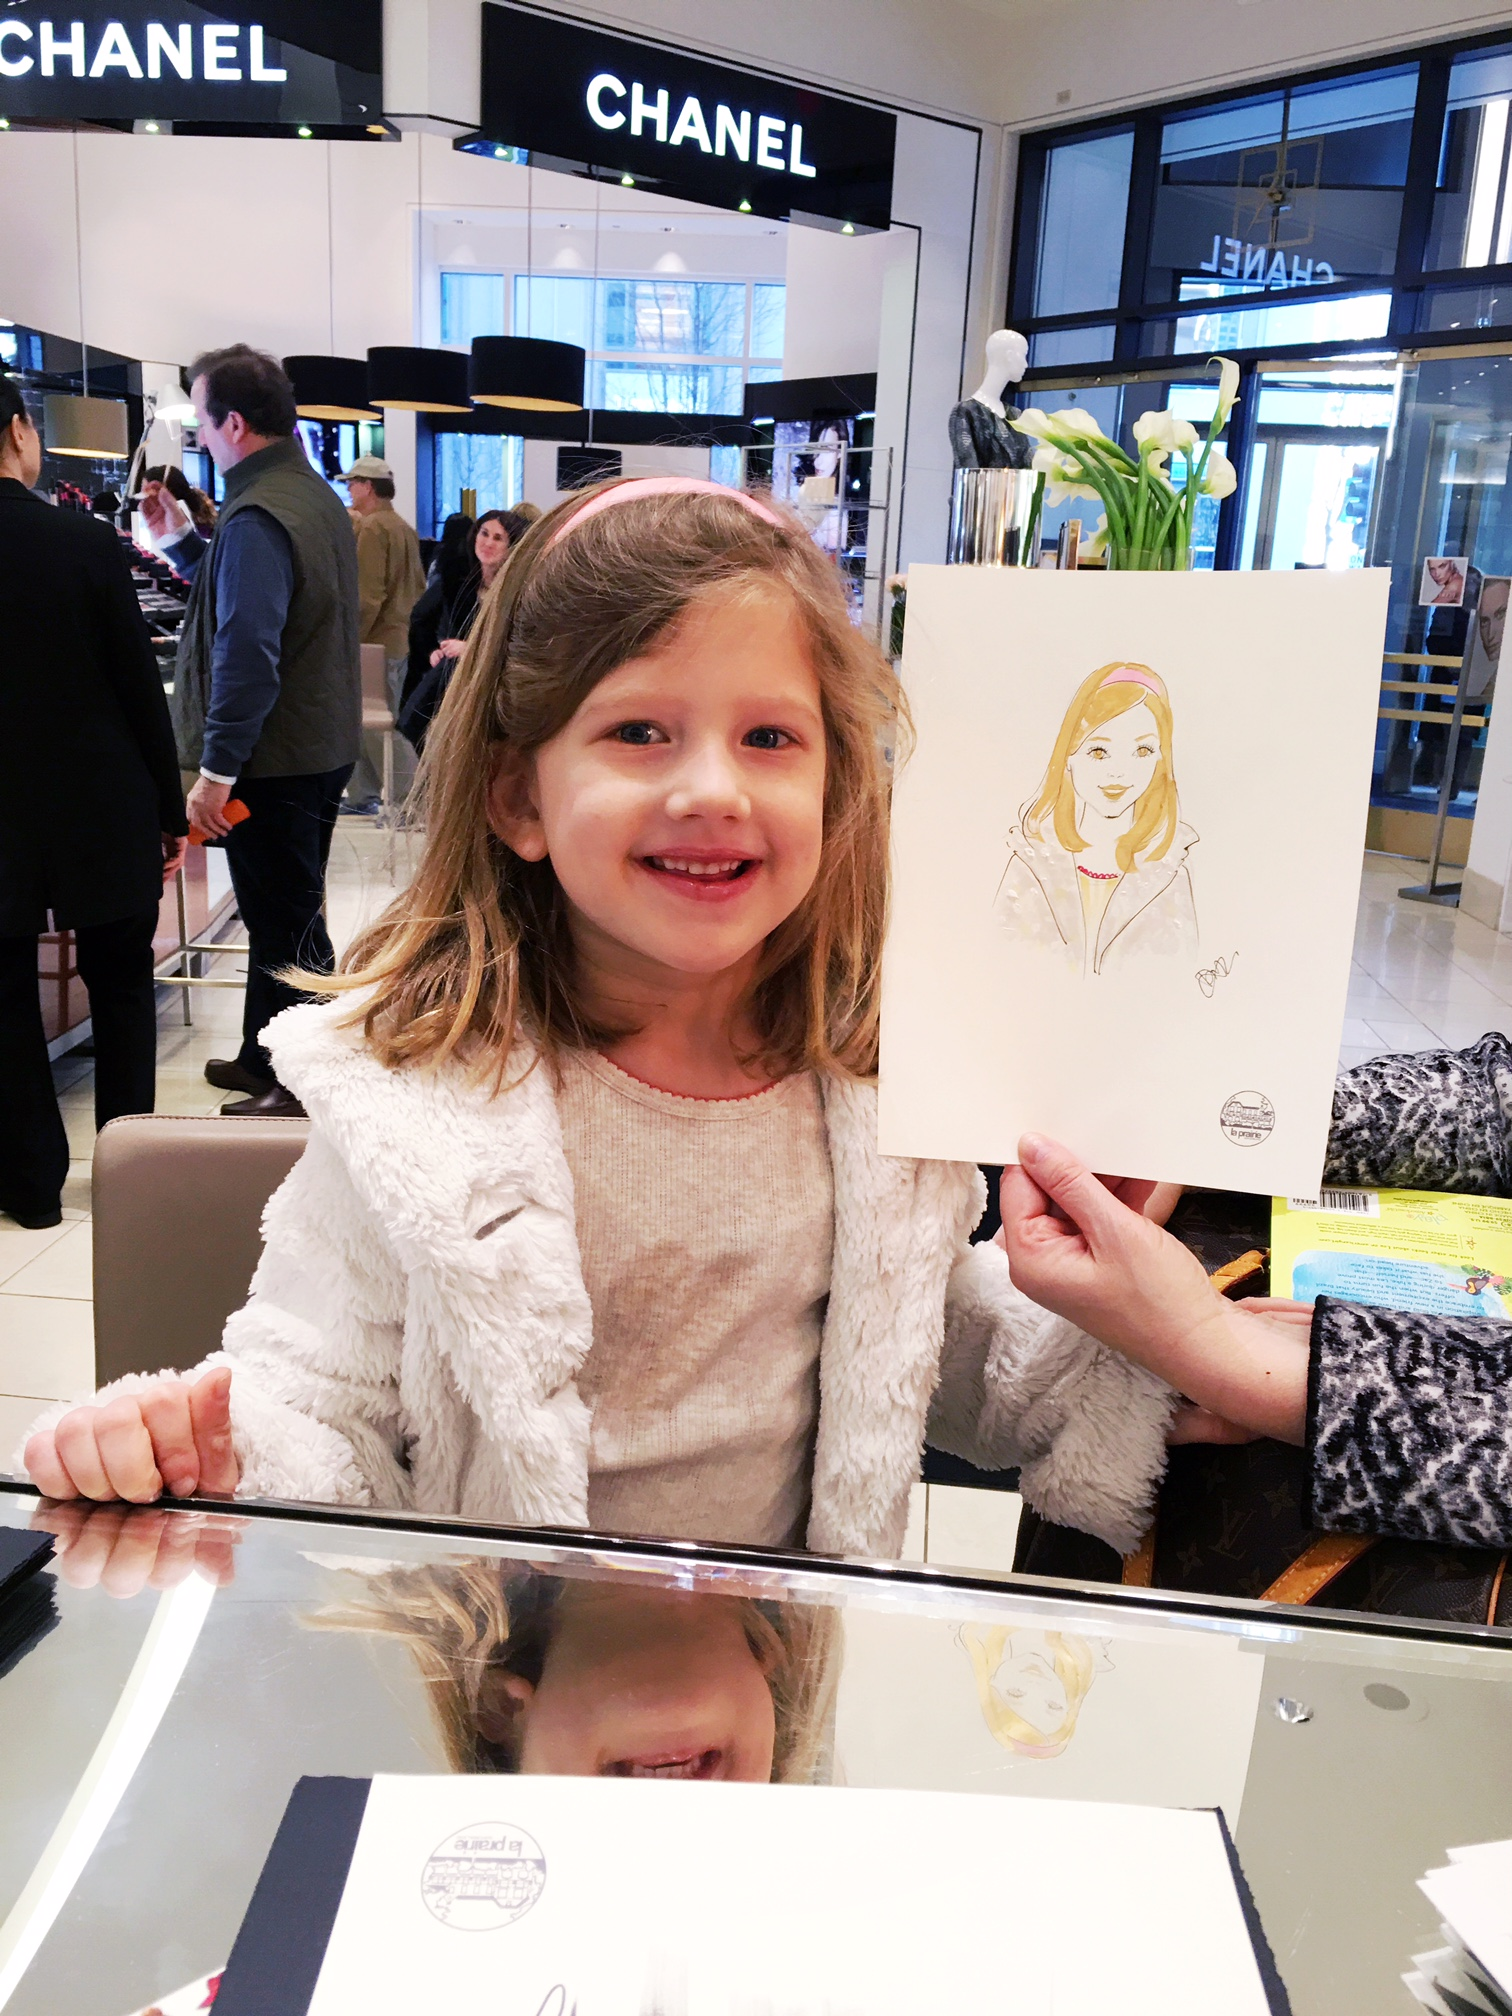 La-Prairie-live-sketch-event-at-Saks fifth avenue-Chicago-by-fashion-illustrator-Rongrong-DeVoe--1